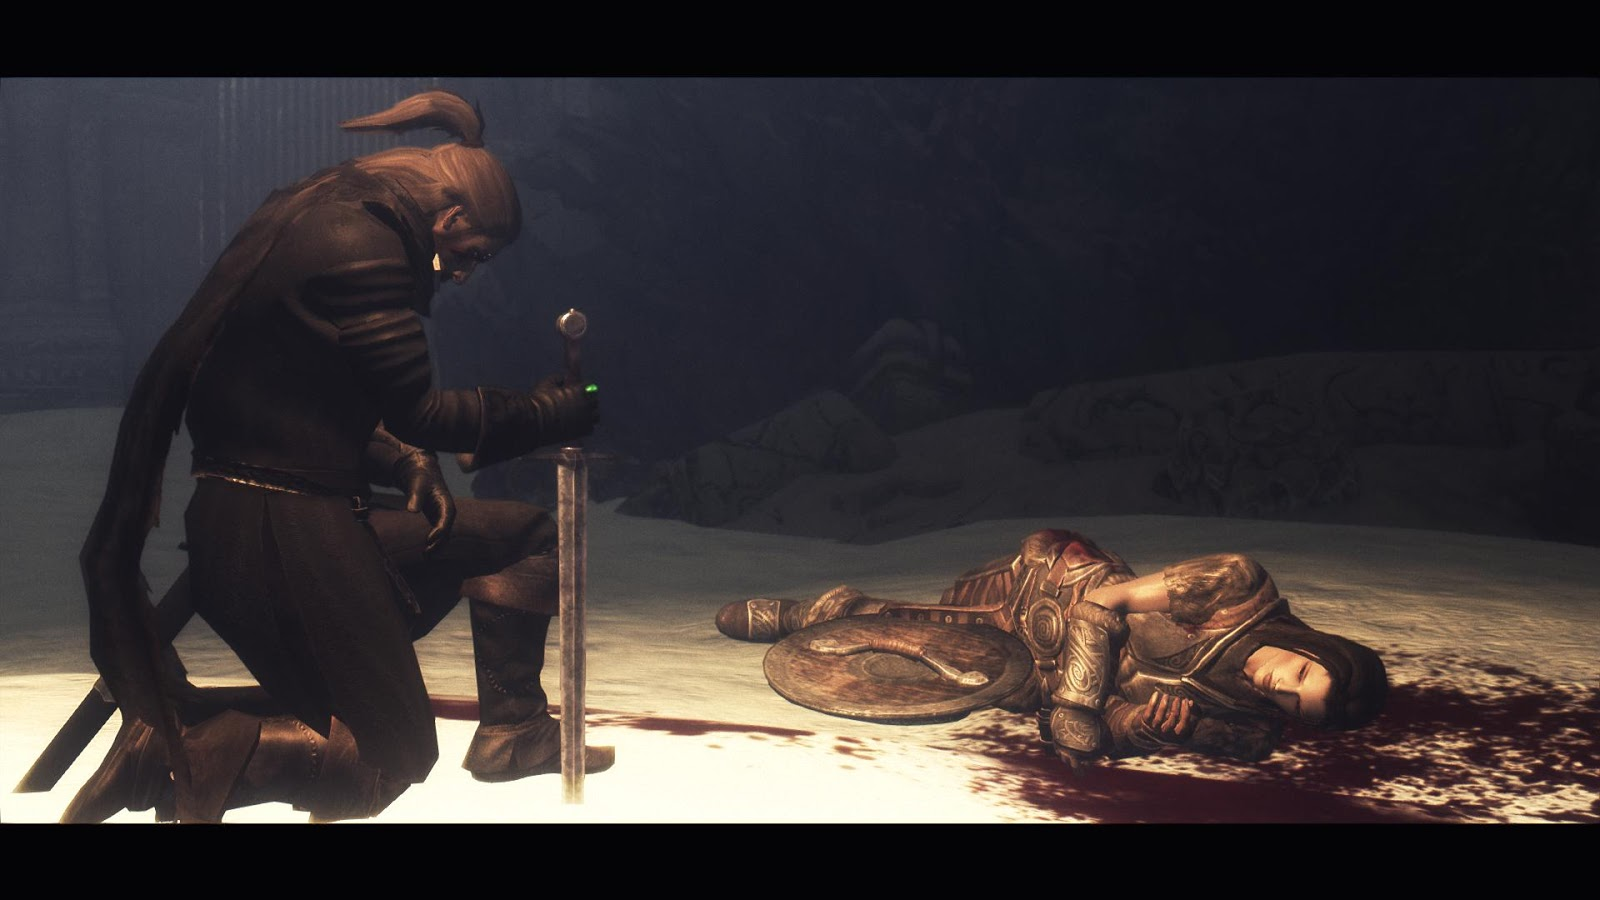 INFOTECH brothers: If Lydia die in Skyrim  GAMING (ELDER